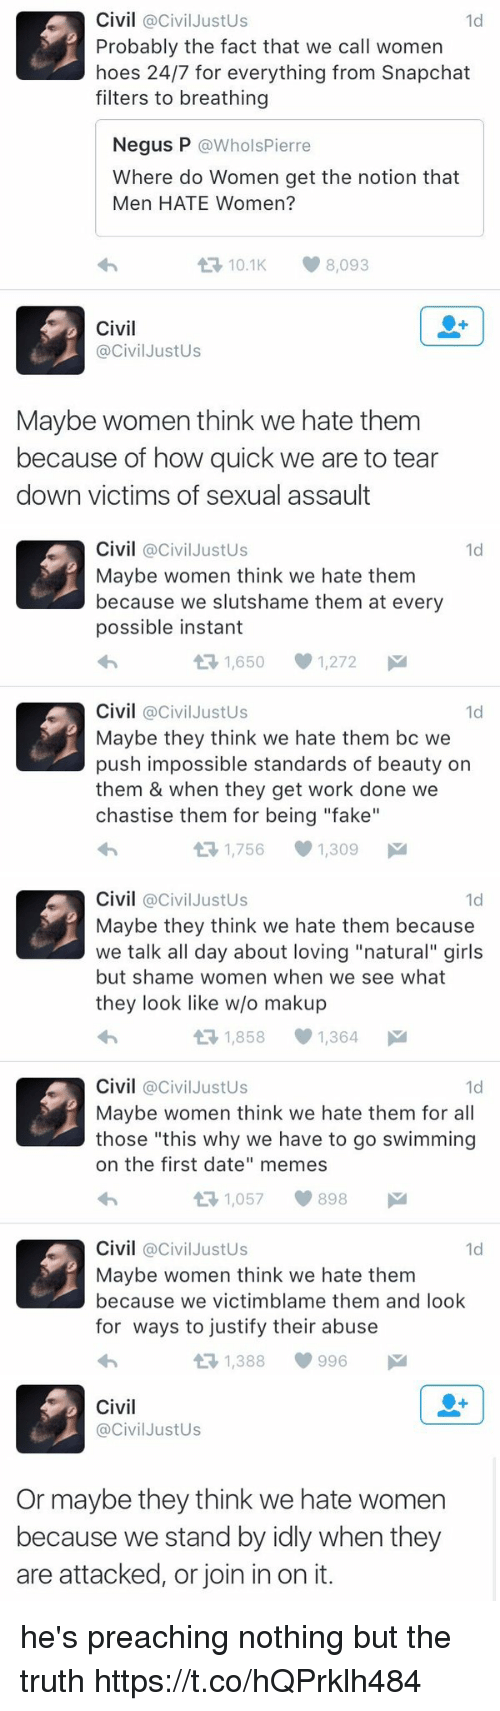 "Fake, Girls, and Hoes: Civil @Civil JustUs  Probably the fact that we call women  hoes 24/7 for everything from Snapchat  filters to breathing  1d  Negus P @WholsPierre  Where do Women get the notion that  Men HATE Women?  わ  10.1K8,093  Civil  @CivilJustUs  Maybe women think we hate them  because of how quick we are to tear  down victims of sexual assault   Civil @CivilJustUs  Maybe women think we hate them  because we slutshame them at every  possible instant  わ  1d  1,650  1,272  Civil @CivilJustUs  Maybe they think we hate them bc we  push impossible standards of beauty on  them & when they get work done we  chastise them for being ""fake""  わ  1d  1,756  1,309   Civil @CivilJustUs  Maybe they think we hate them because  we talk all day about loving ""natural"" girls  but shame women when we see what  they look like w/o makup  わ  1d  1,8581,364  Civil @CivilJustUs  Maybe women think we hate them for all  those ""this why we have to go swimming  on the first date"" memes  わ  1d  1,057898  Civil @civilJustUs  Maybe women think we hate them  because we victimblame them and loolk  for ways to justify their abuse  わ  1d  1,388  996   Civil  @CivilJustUs  Or maybe they think we hate women  because we stand by idly when they  are attacked, or join in on it. he's preaching nothing but the truth https://t.co/hQPrklh484"